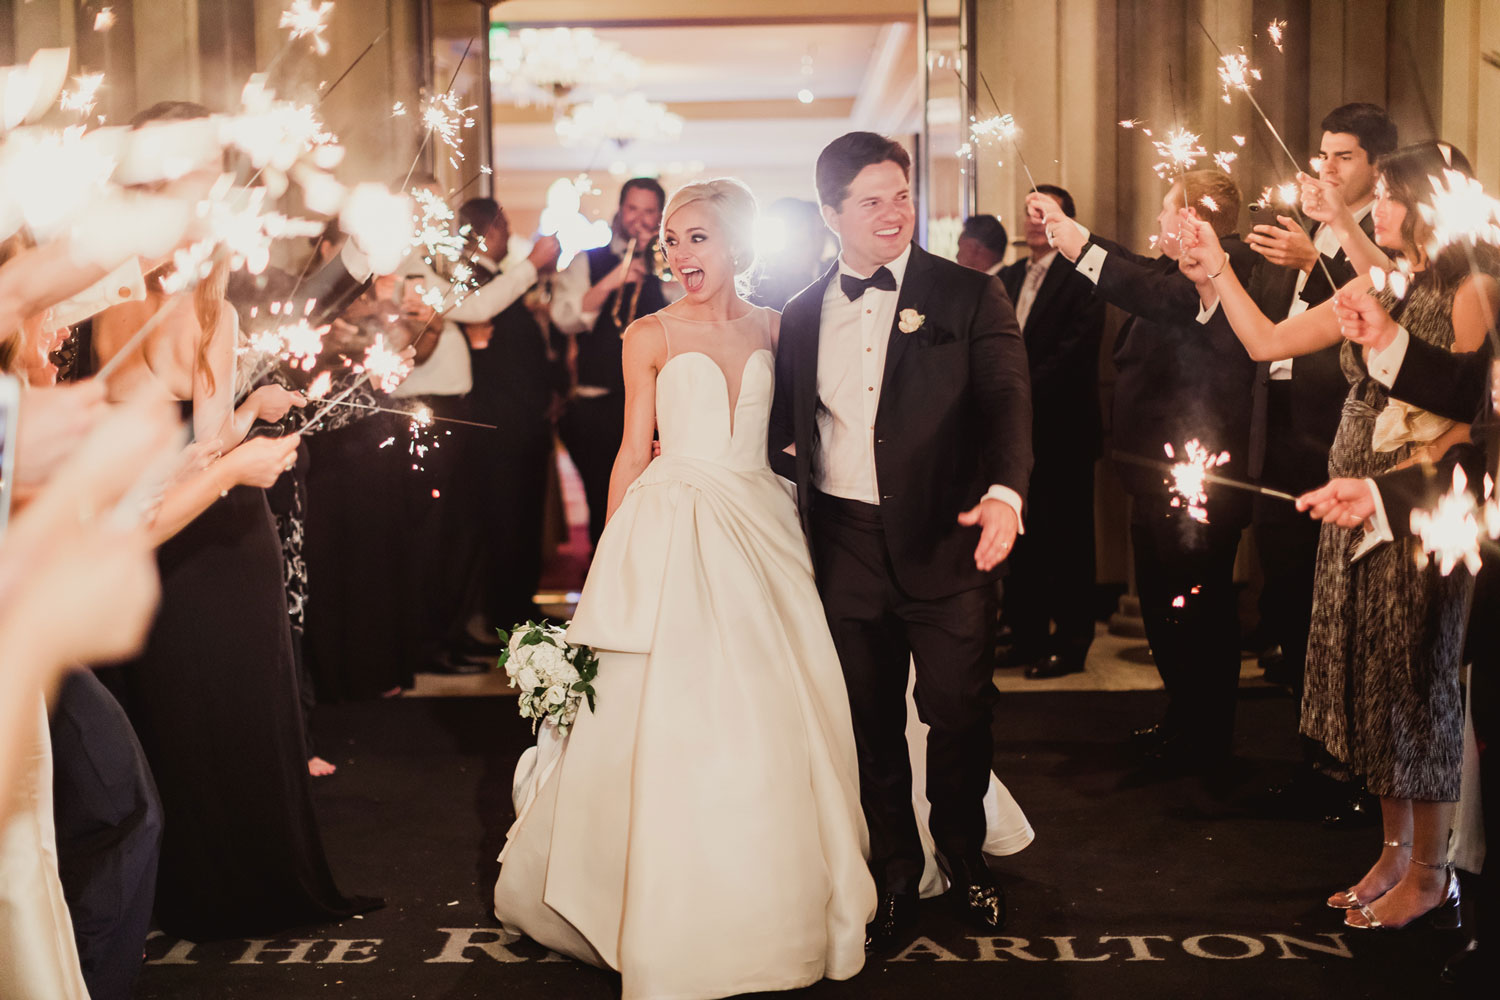 happy newlyweds during sparkler grand exit, bride in ball gown with her jaw dropped